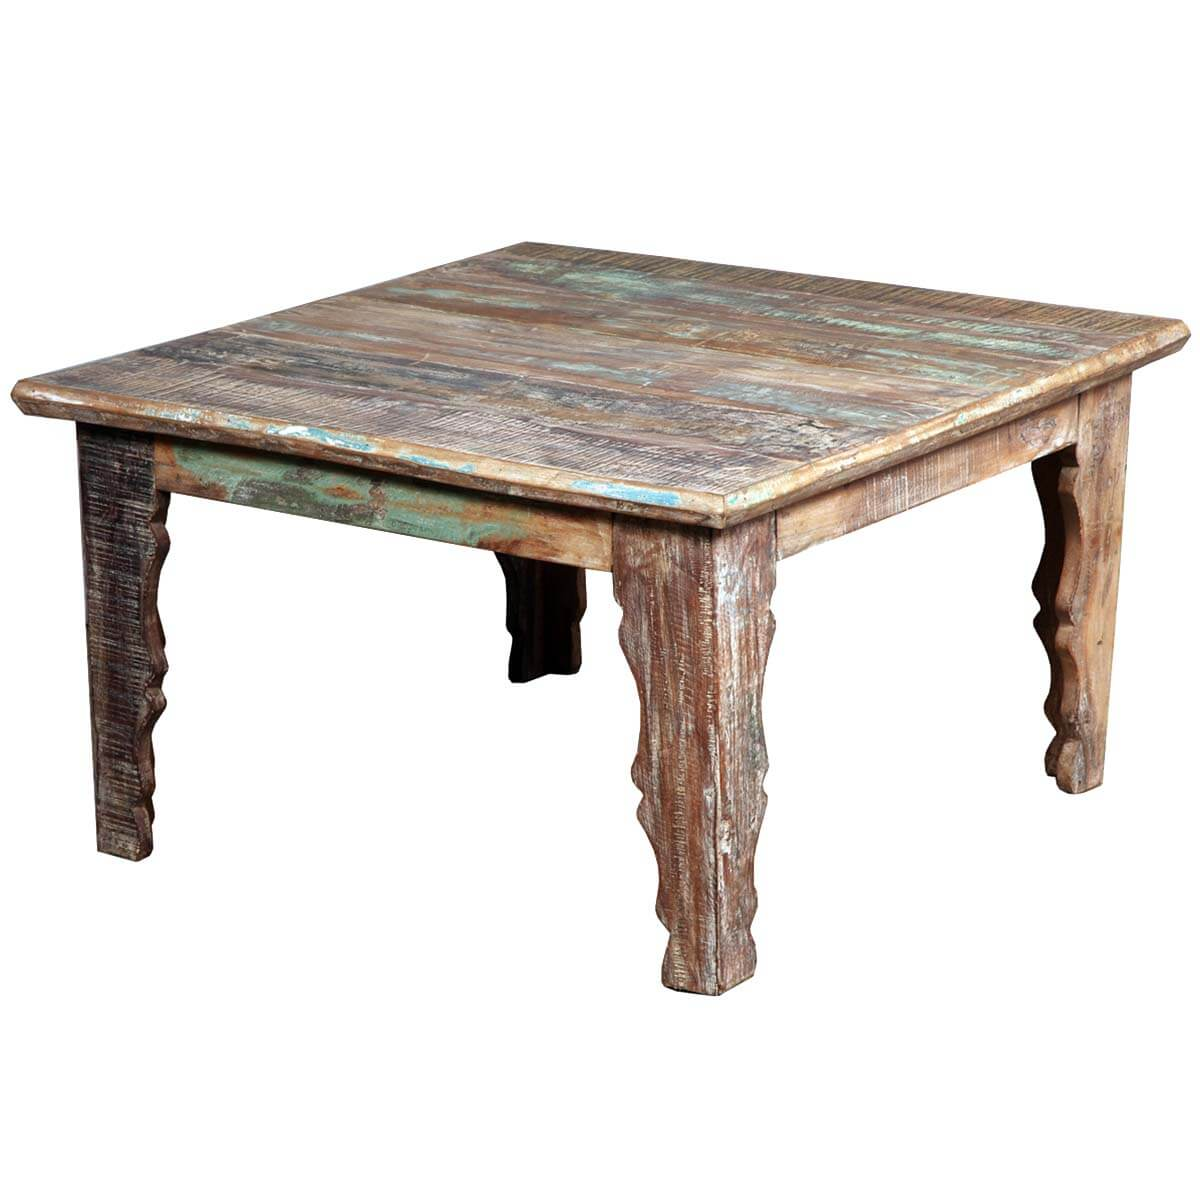 Rustic Gothic Reclaimed Hardwood Square Coffee Table